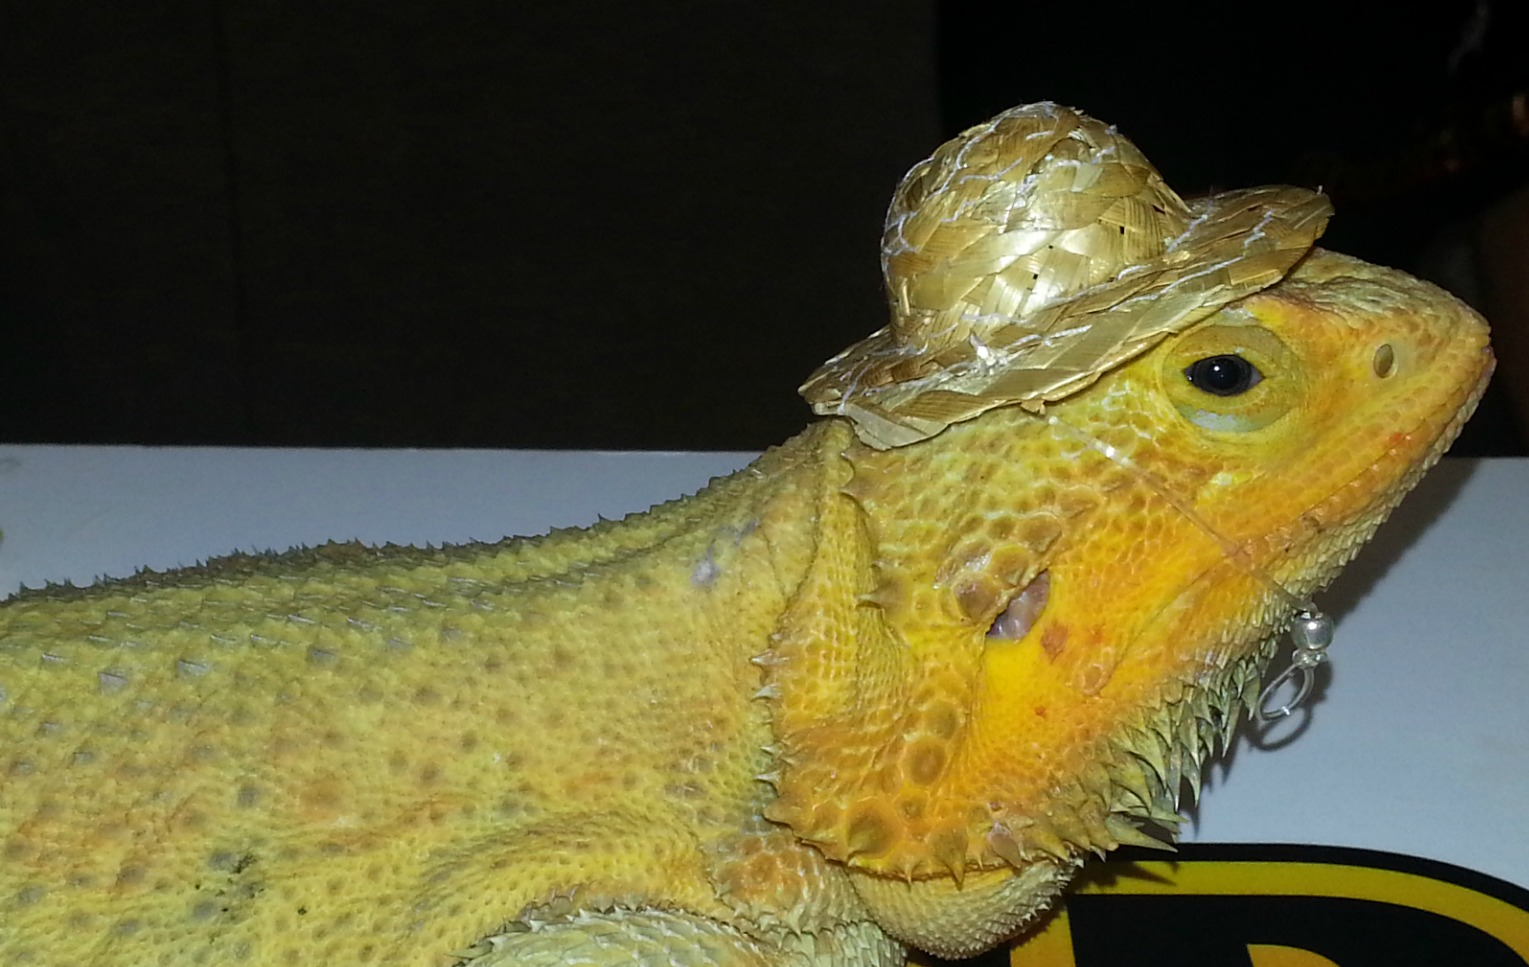 Exotic Small Pets Reptiles Turtles Snakes Fish Rodents Mo Pictures to ...